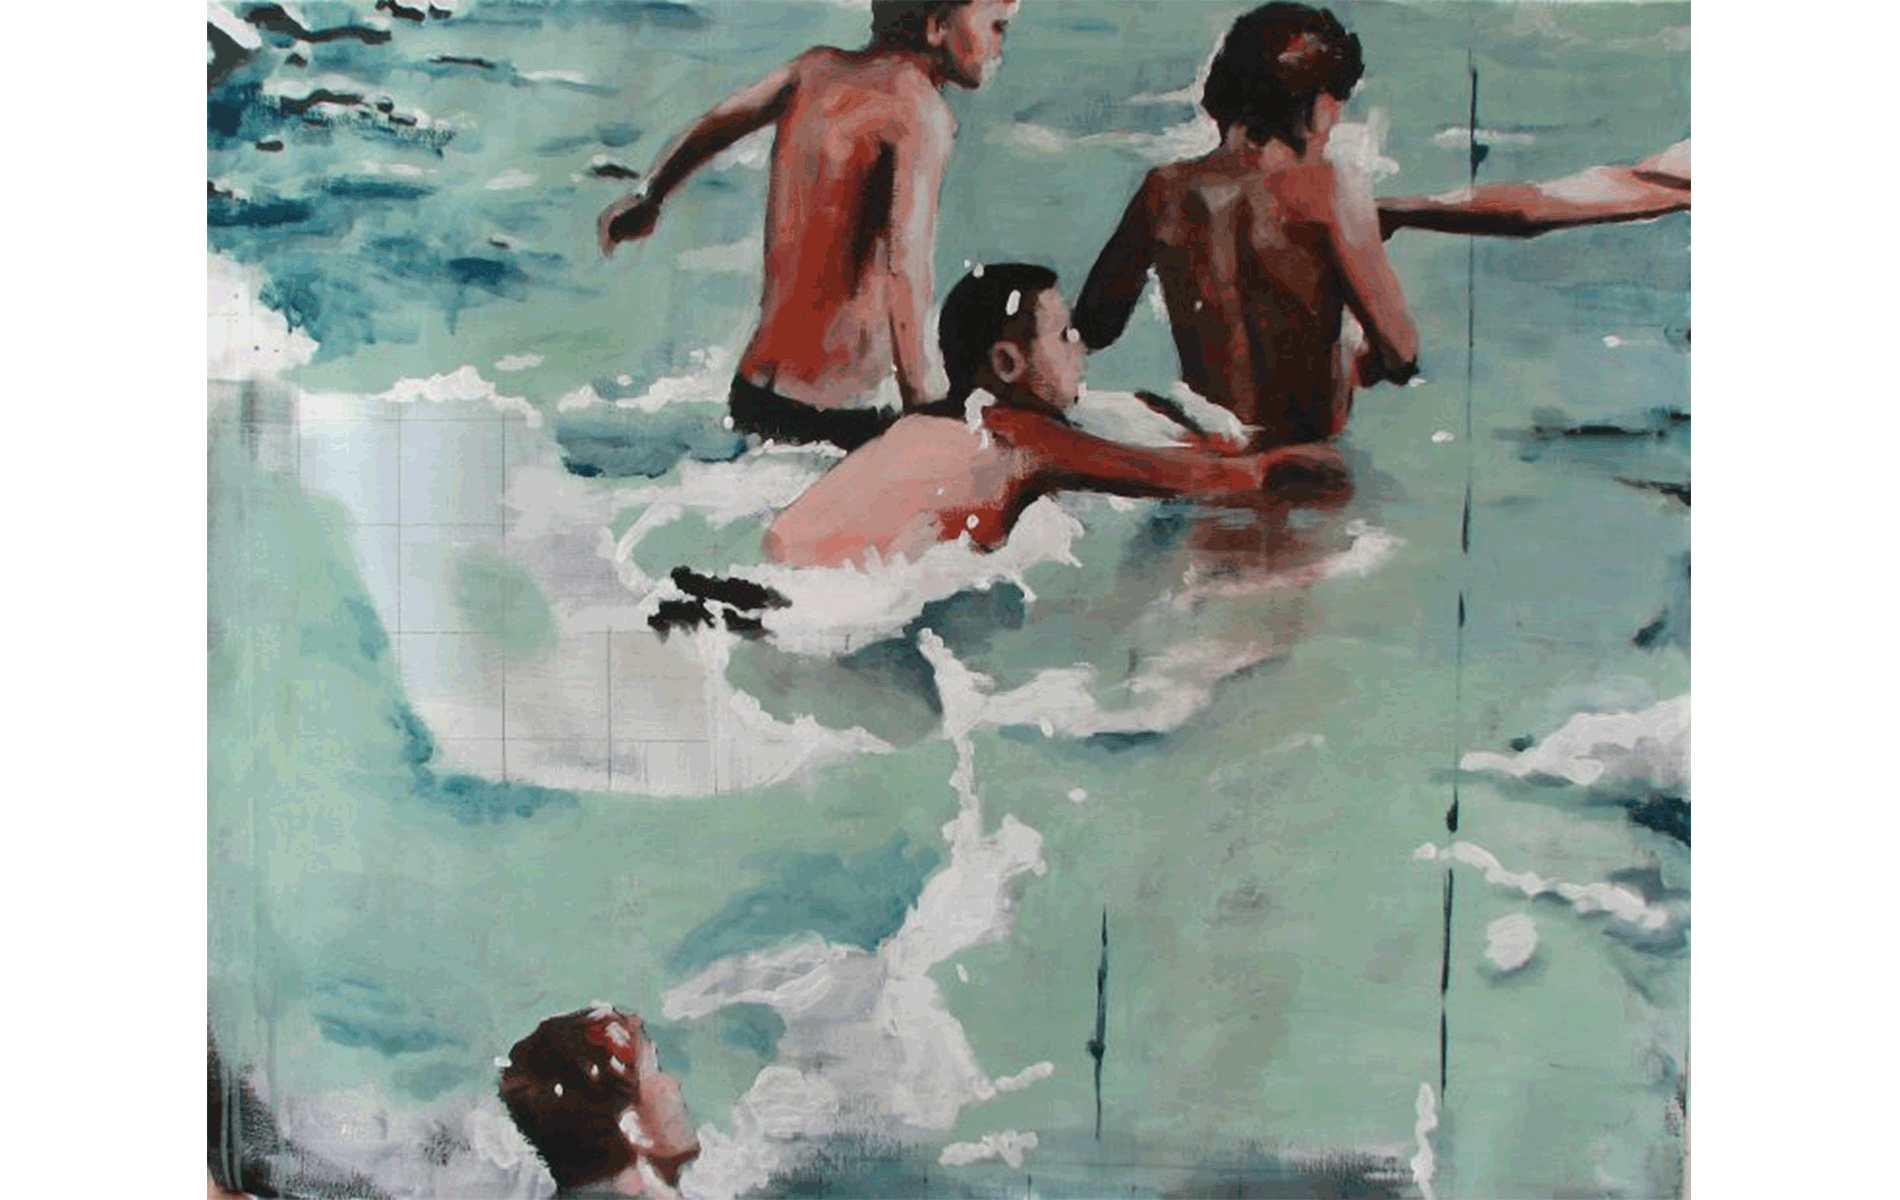 Painter Mike Hall I Acrylic French Painting I London Contemporary Art Gallery